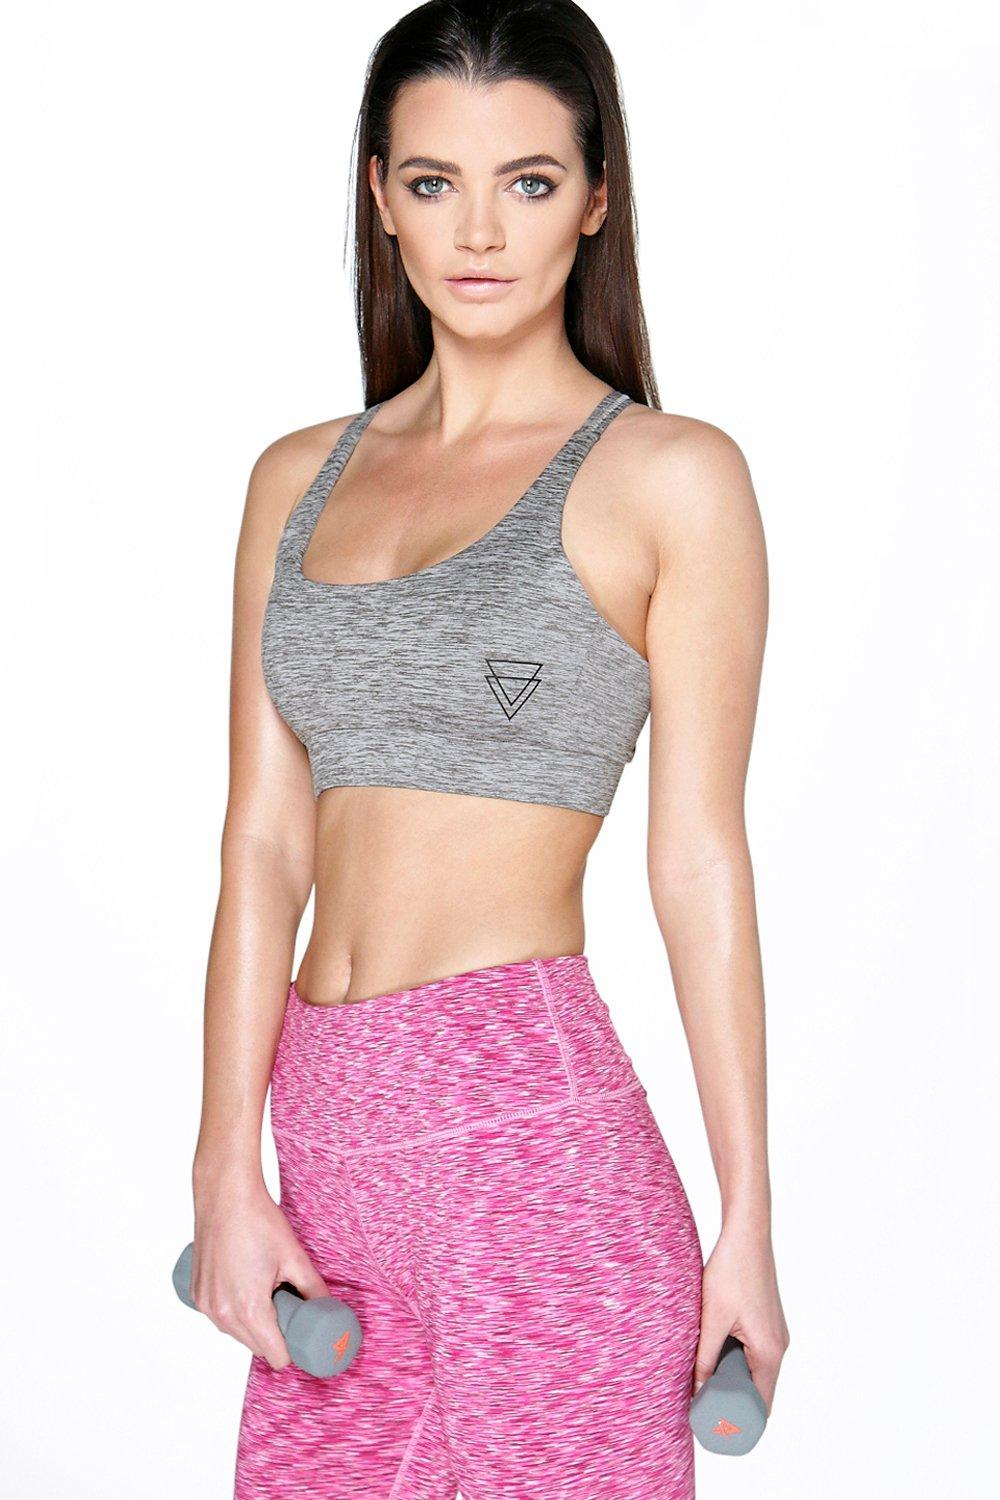 Aleena Fit Performance Space Dye Sports Crop